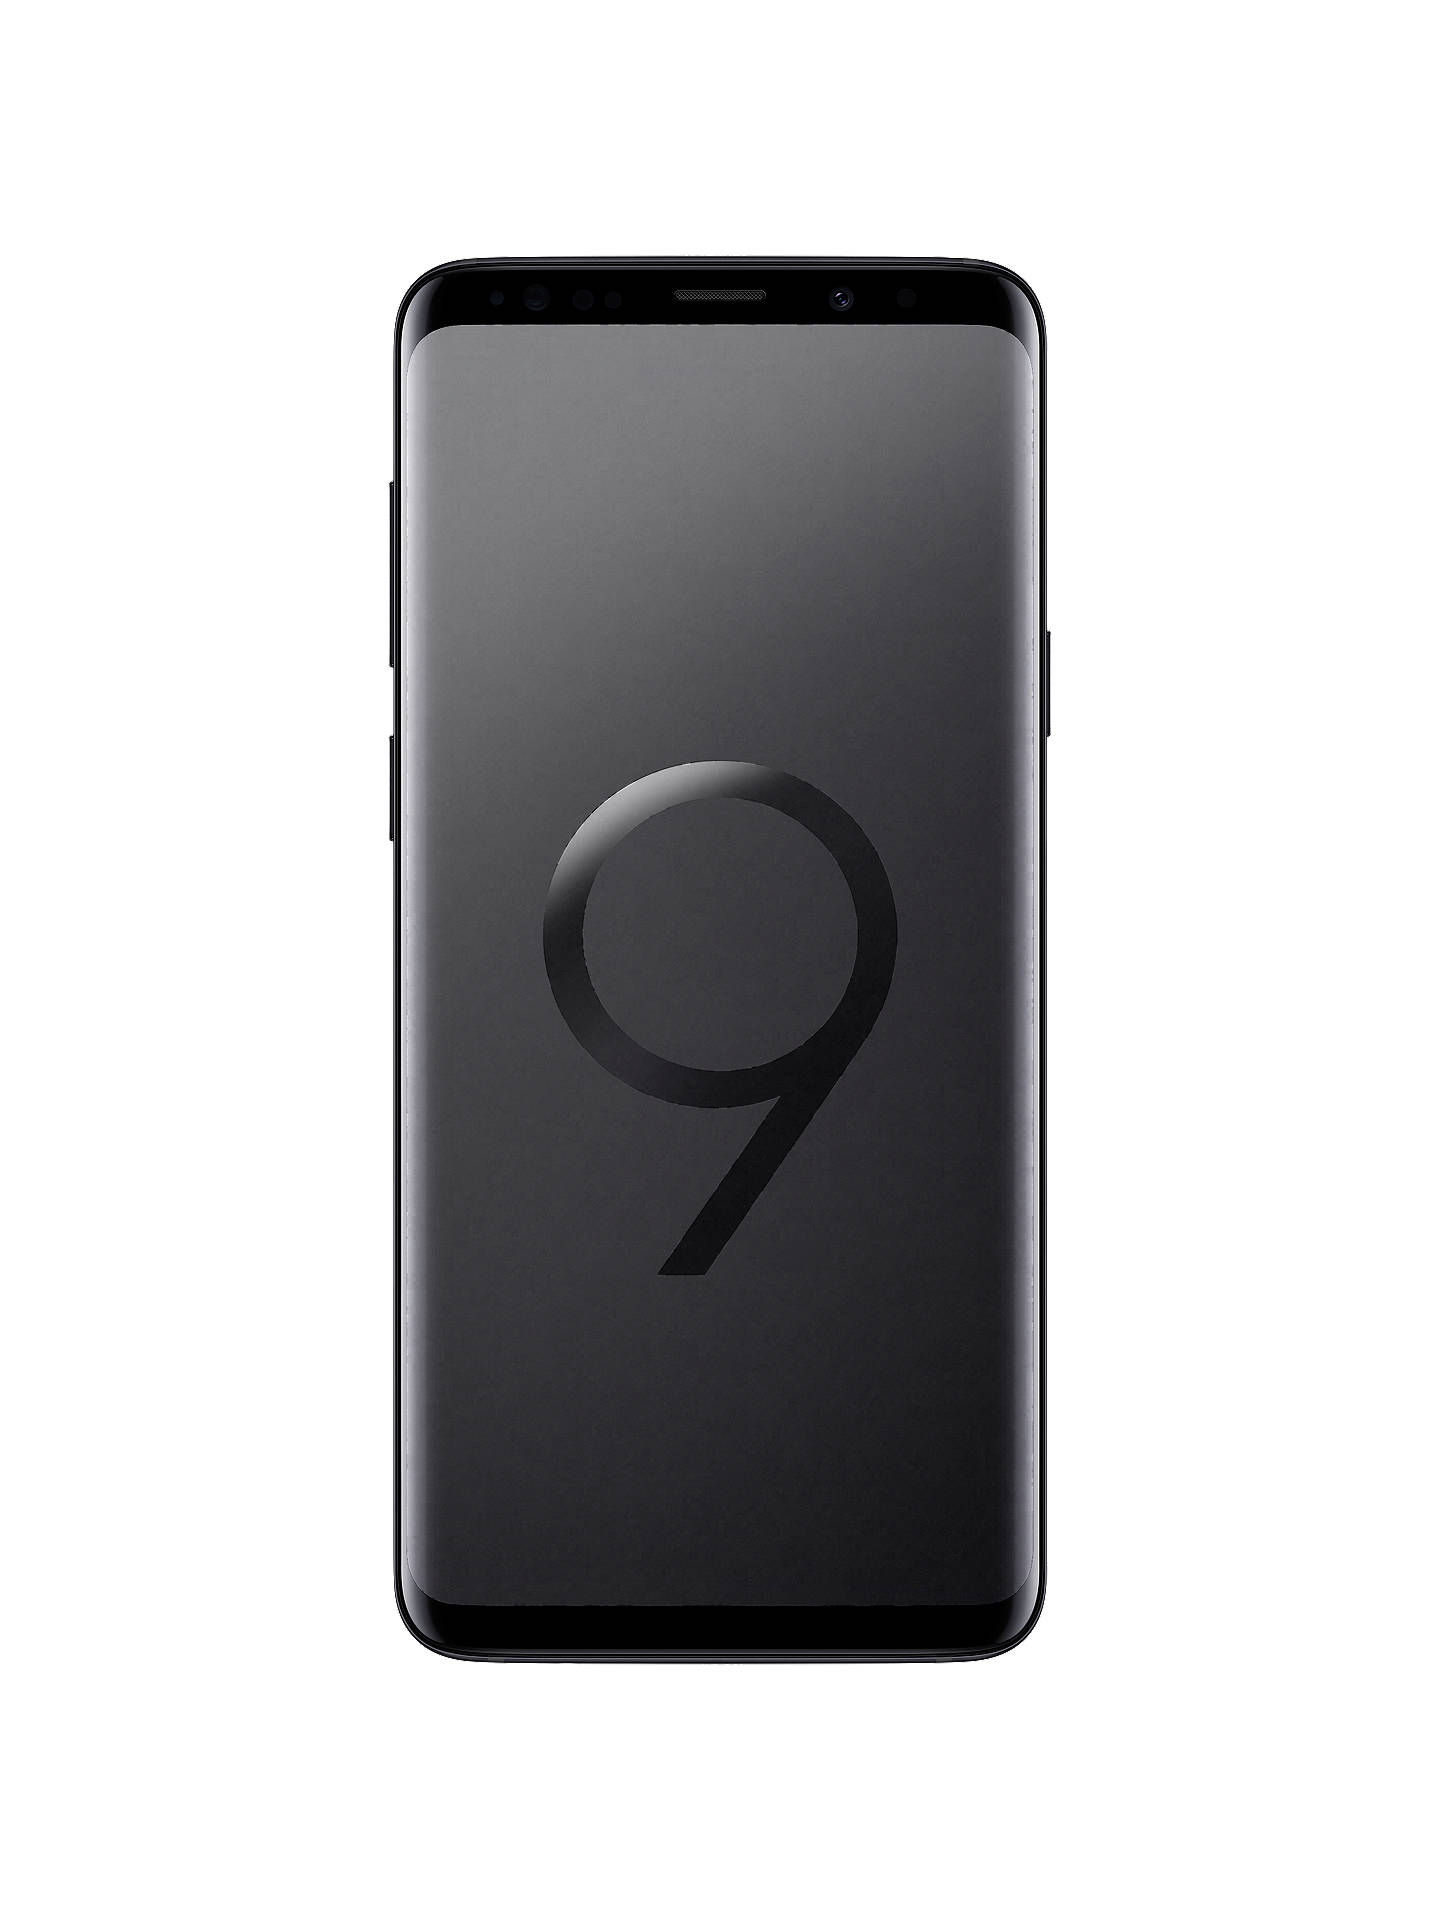 samsung galaxy s9 plus smartphone android 6 2 4g lte. Black Bedroom Furniture Sets. Home Design Ideas